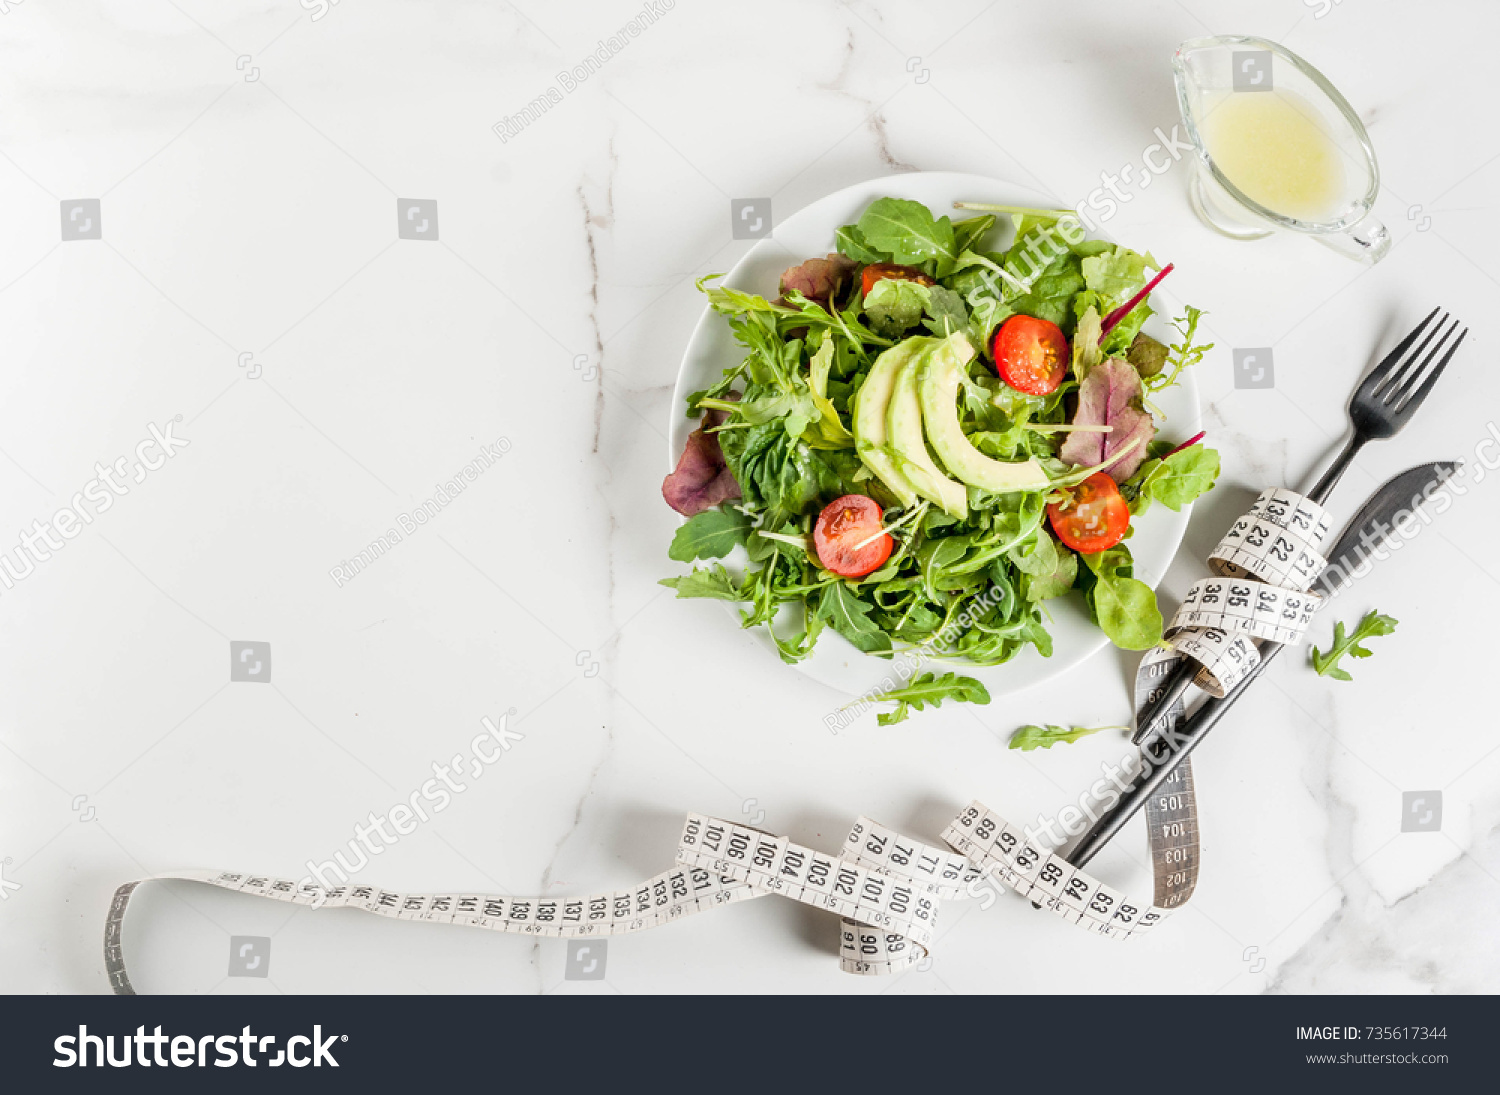 Healthy Balanced Diet Concept Weight Loss Calorie Counting Plate With Green Salad Leaves